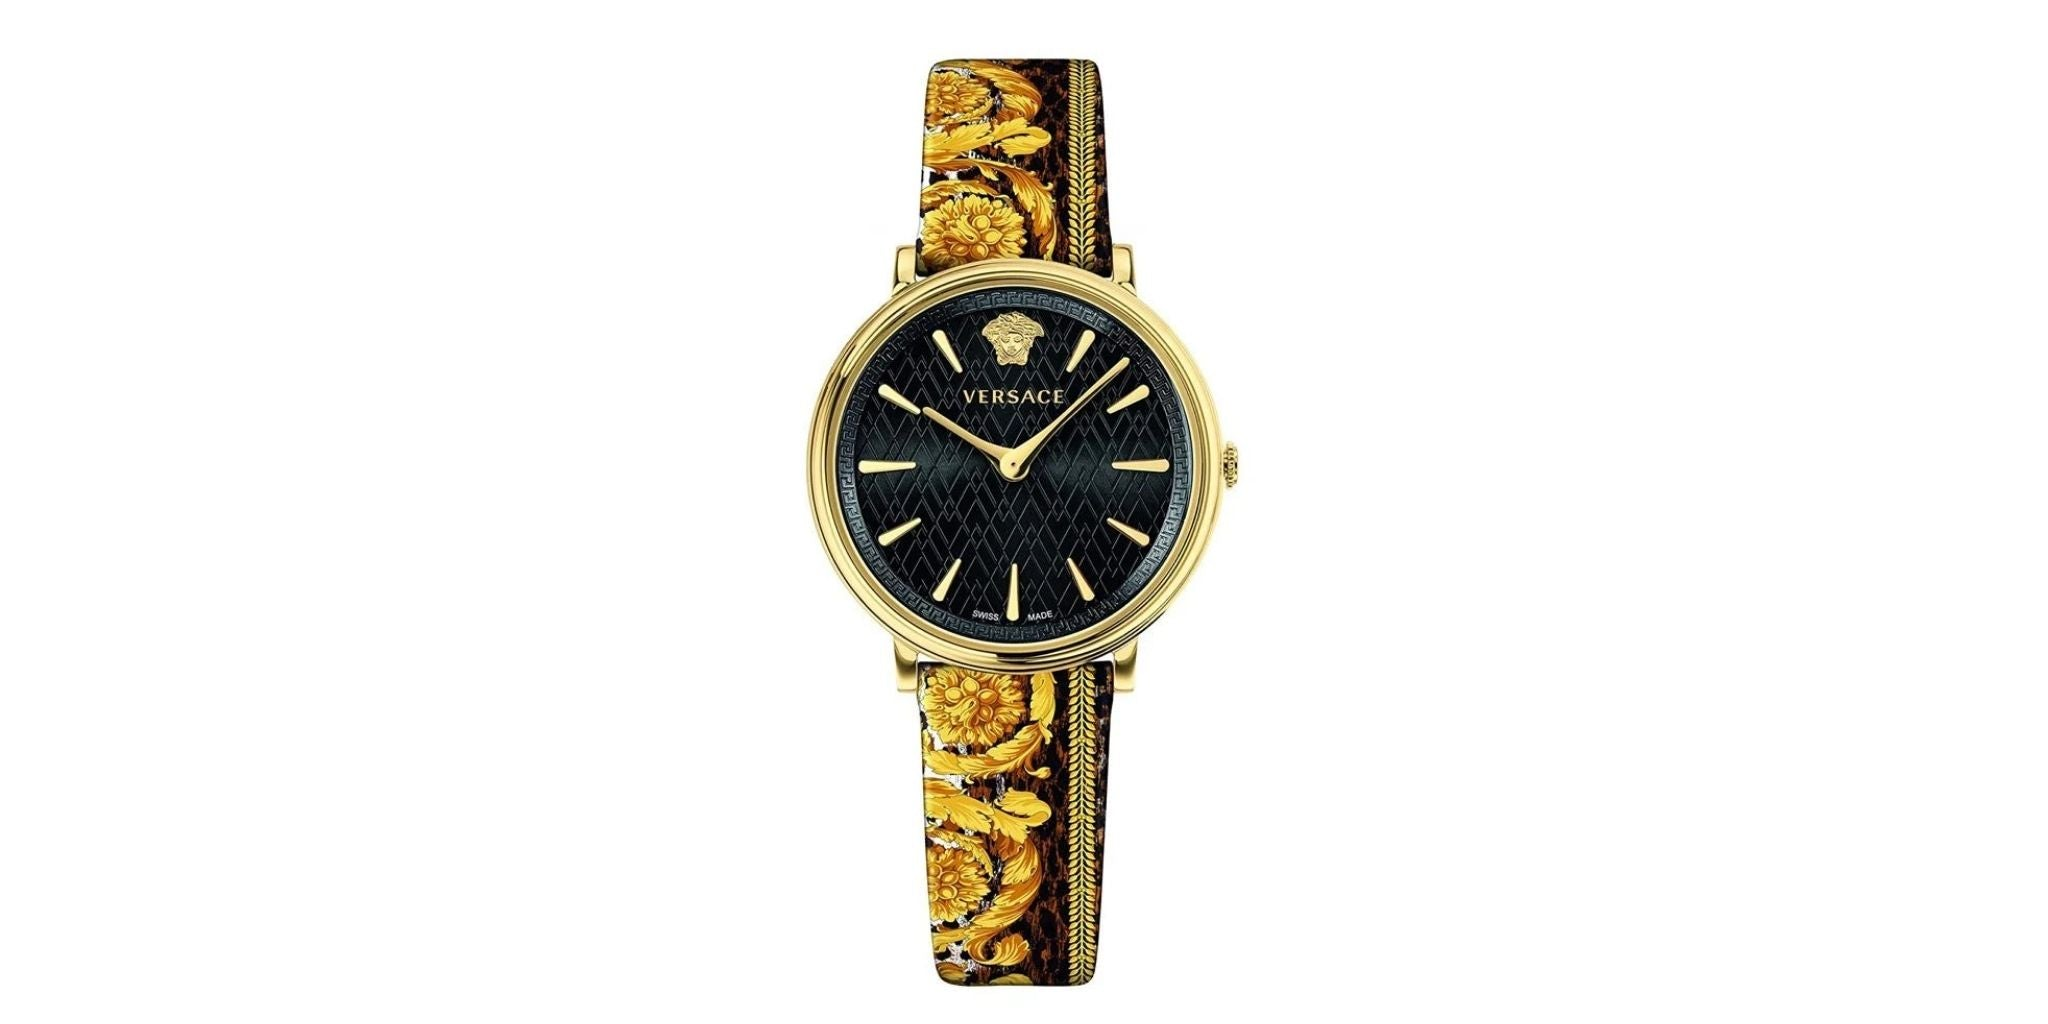 Versace V-Circle Tribute Edition Black, Best Watch Brands for Women, Best Watches For Women, Best Women's Watches, Best Women's Watches 2020, Ladies Watches, Quality Women's Watches,